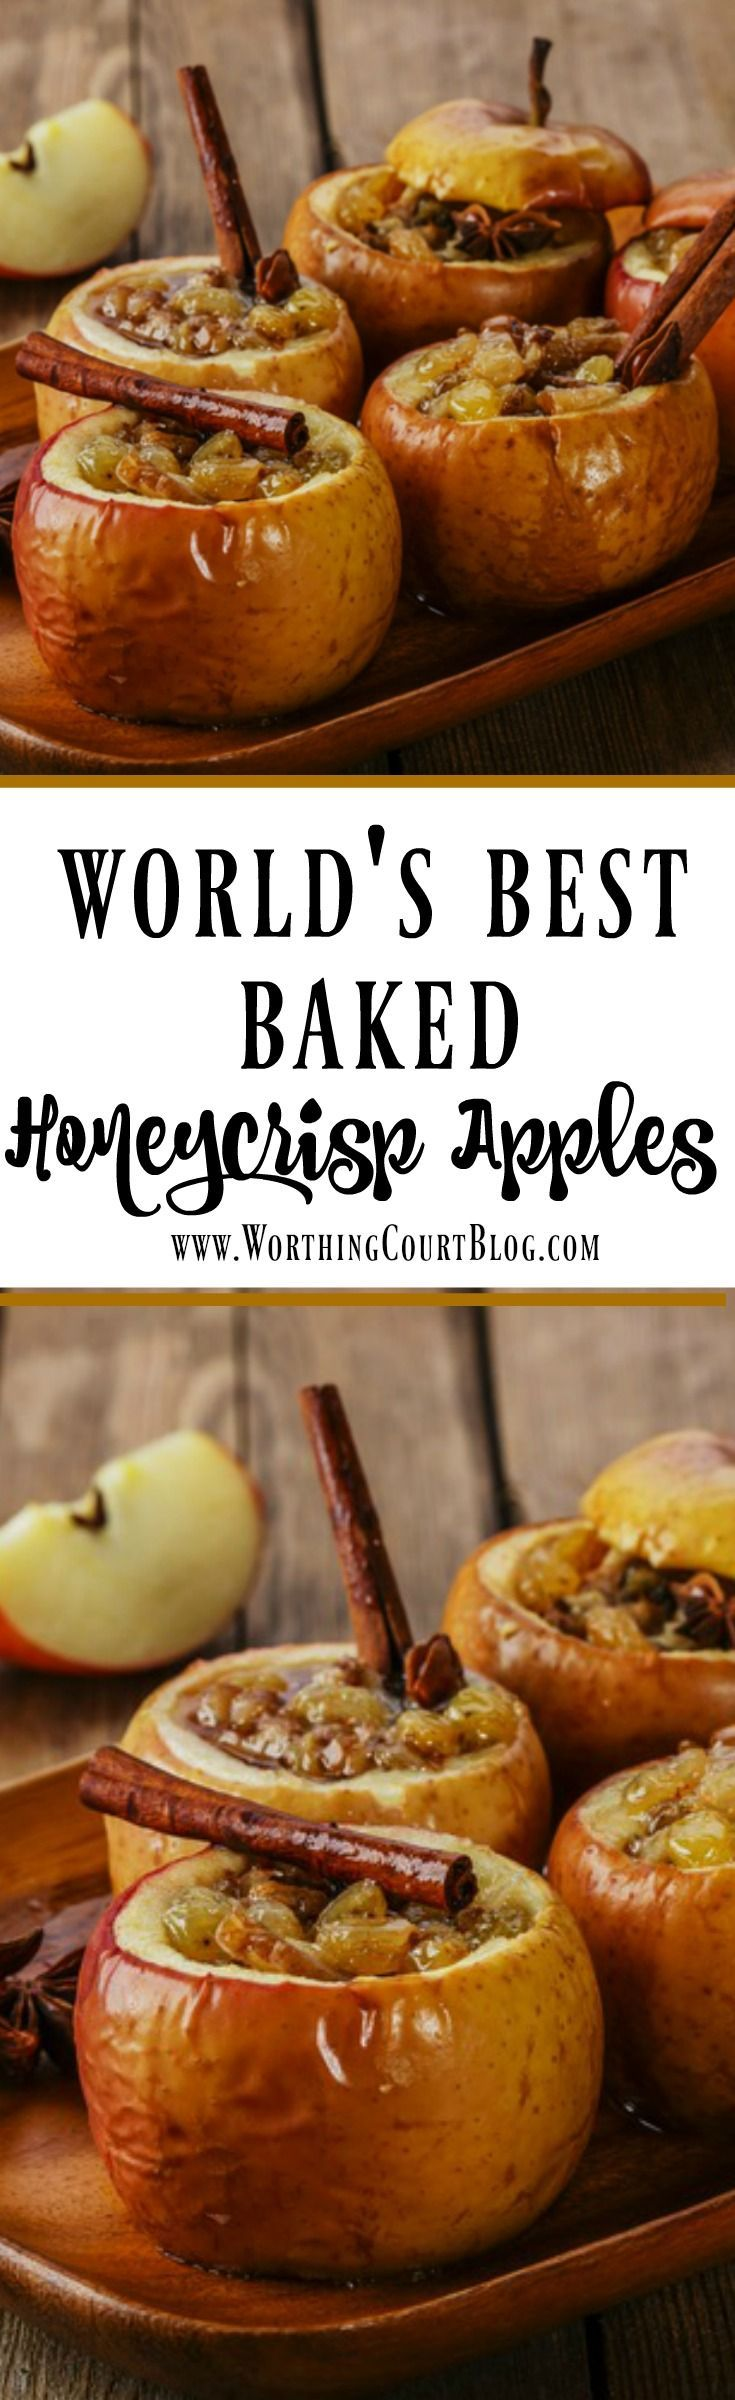 If you love apples, you're going to swoon over this easy to prepare and oh-so-tasty recipe for Baked Honeycrisp Apples